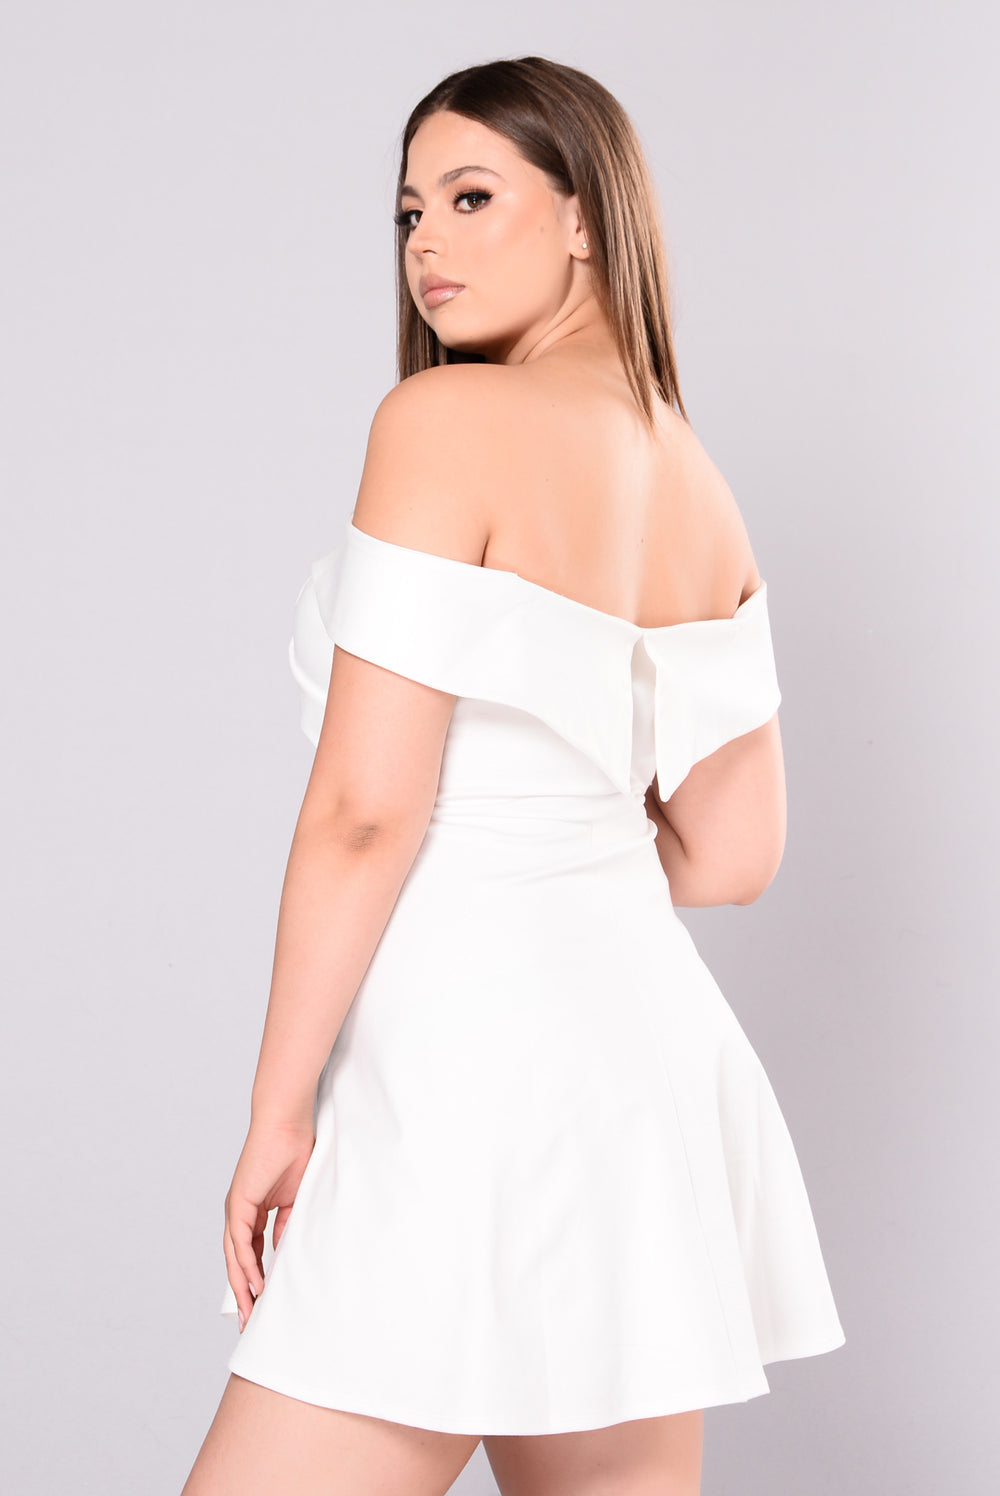 Take Care Dress - White